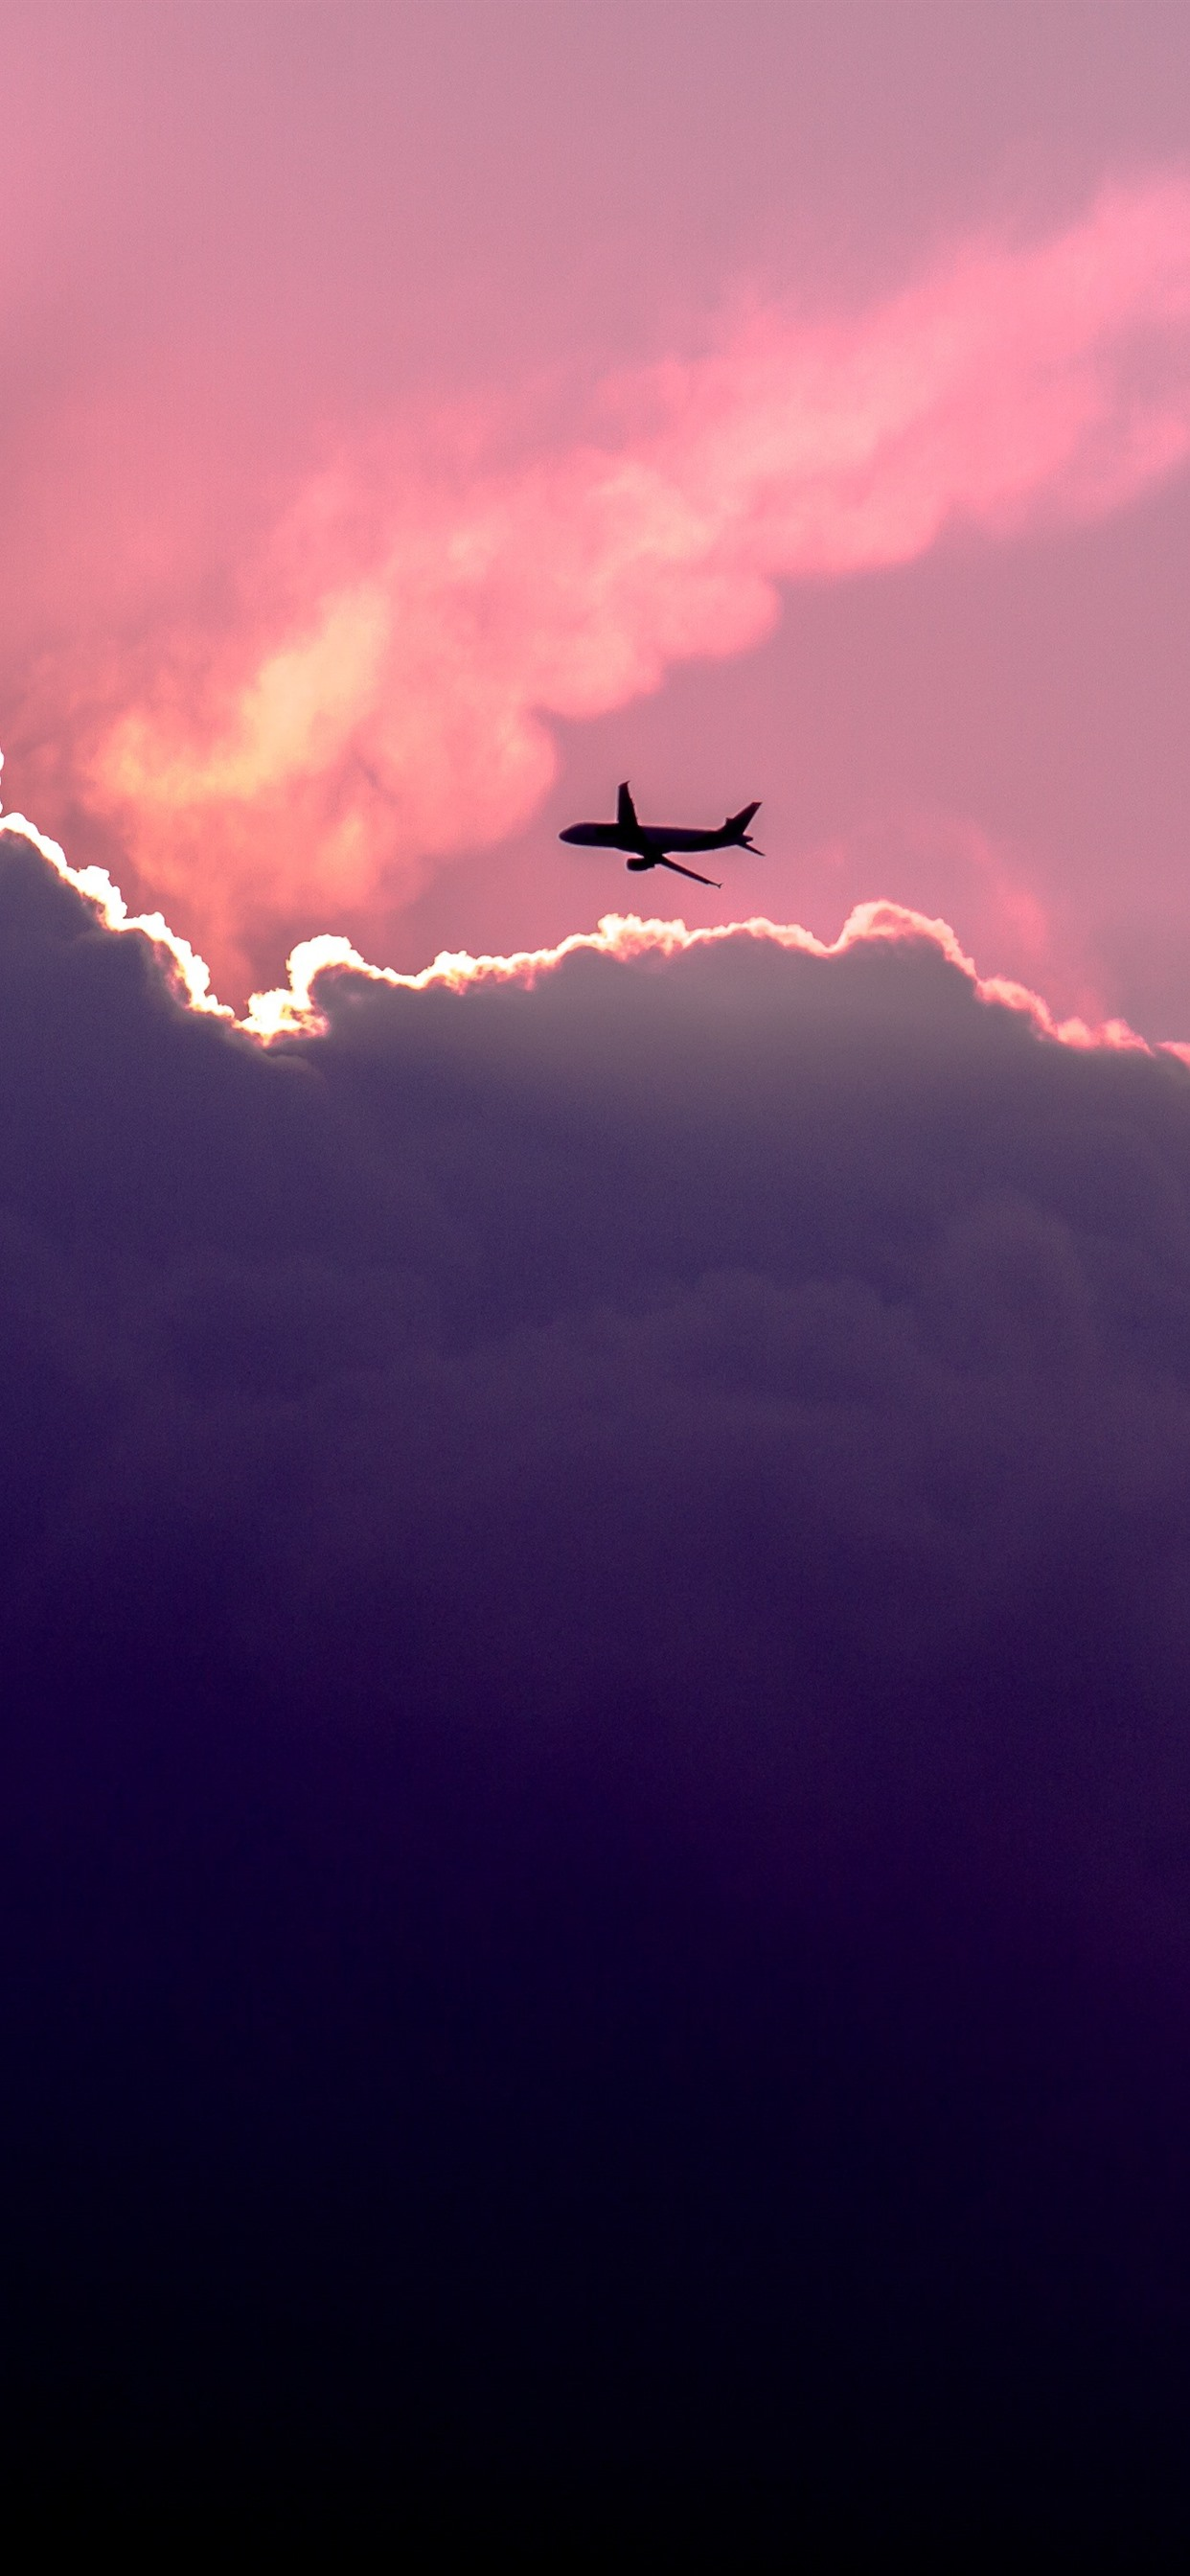 Wallpaper Sky Clouds Plane 5120x2880 Uhd 5k Picture Image